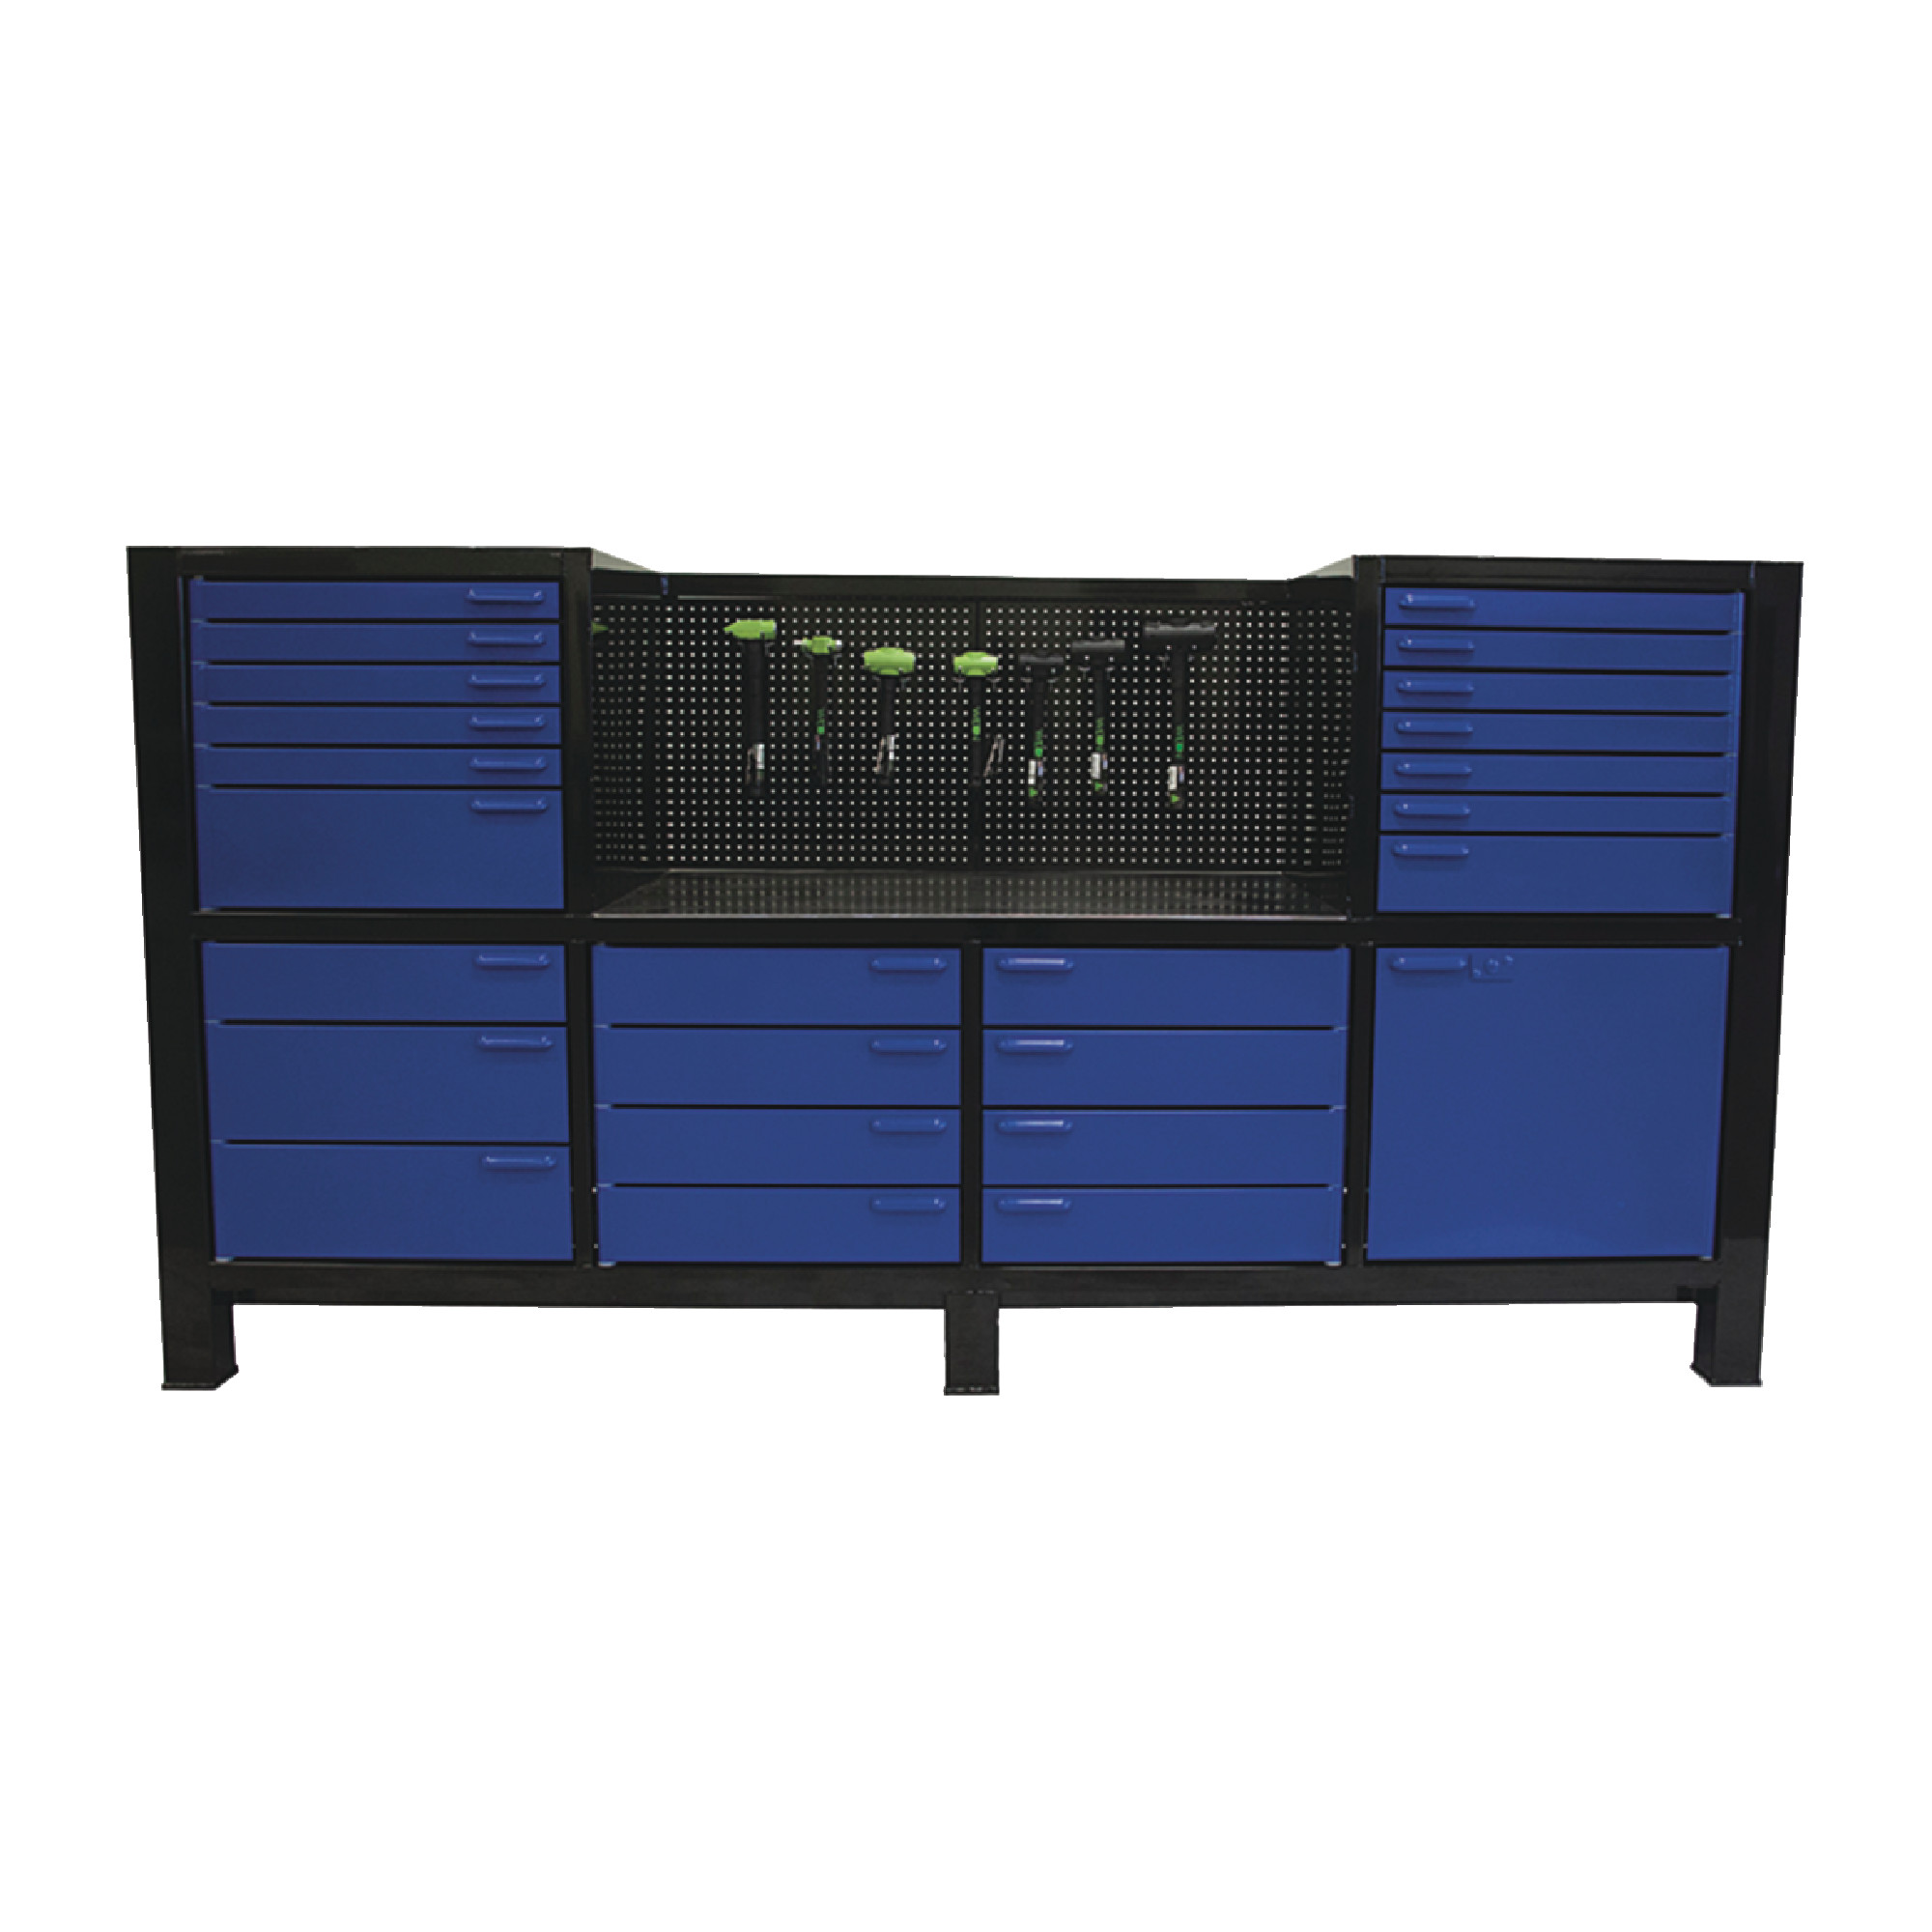 6Bay Space Saver Cabinet Six Full Banks Of Drawers Pegboard Included